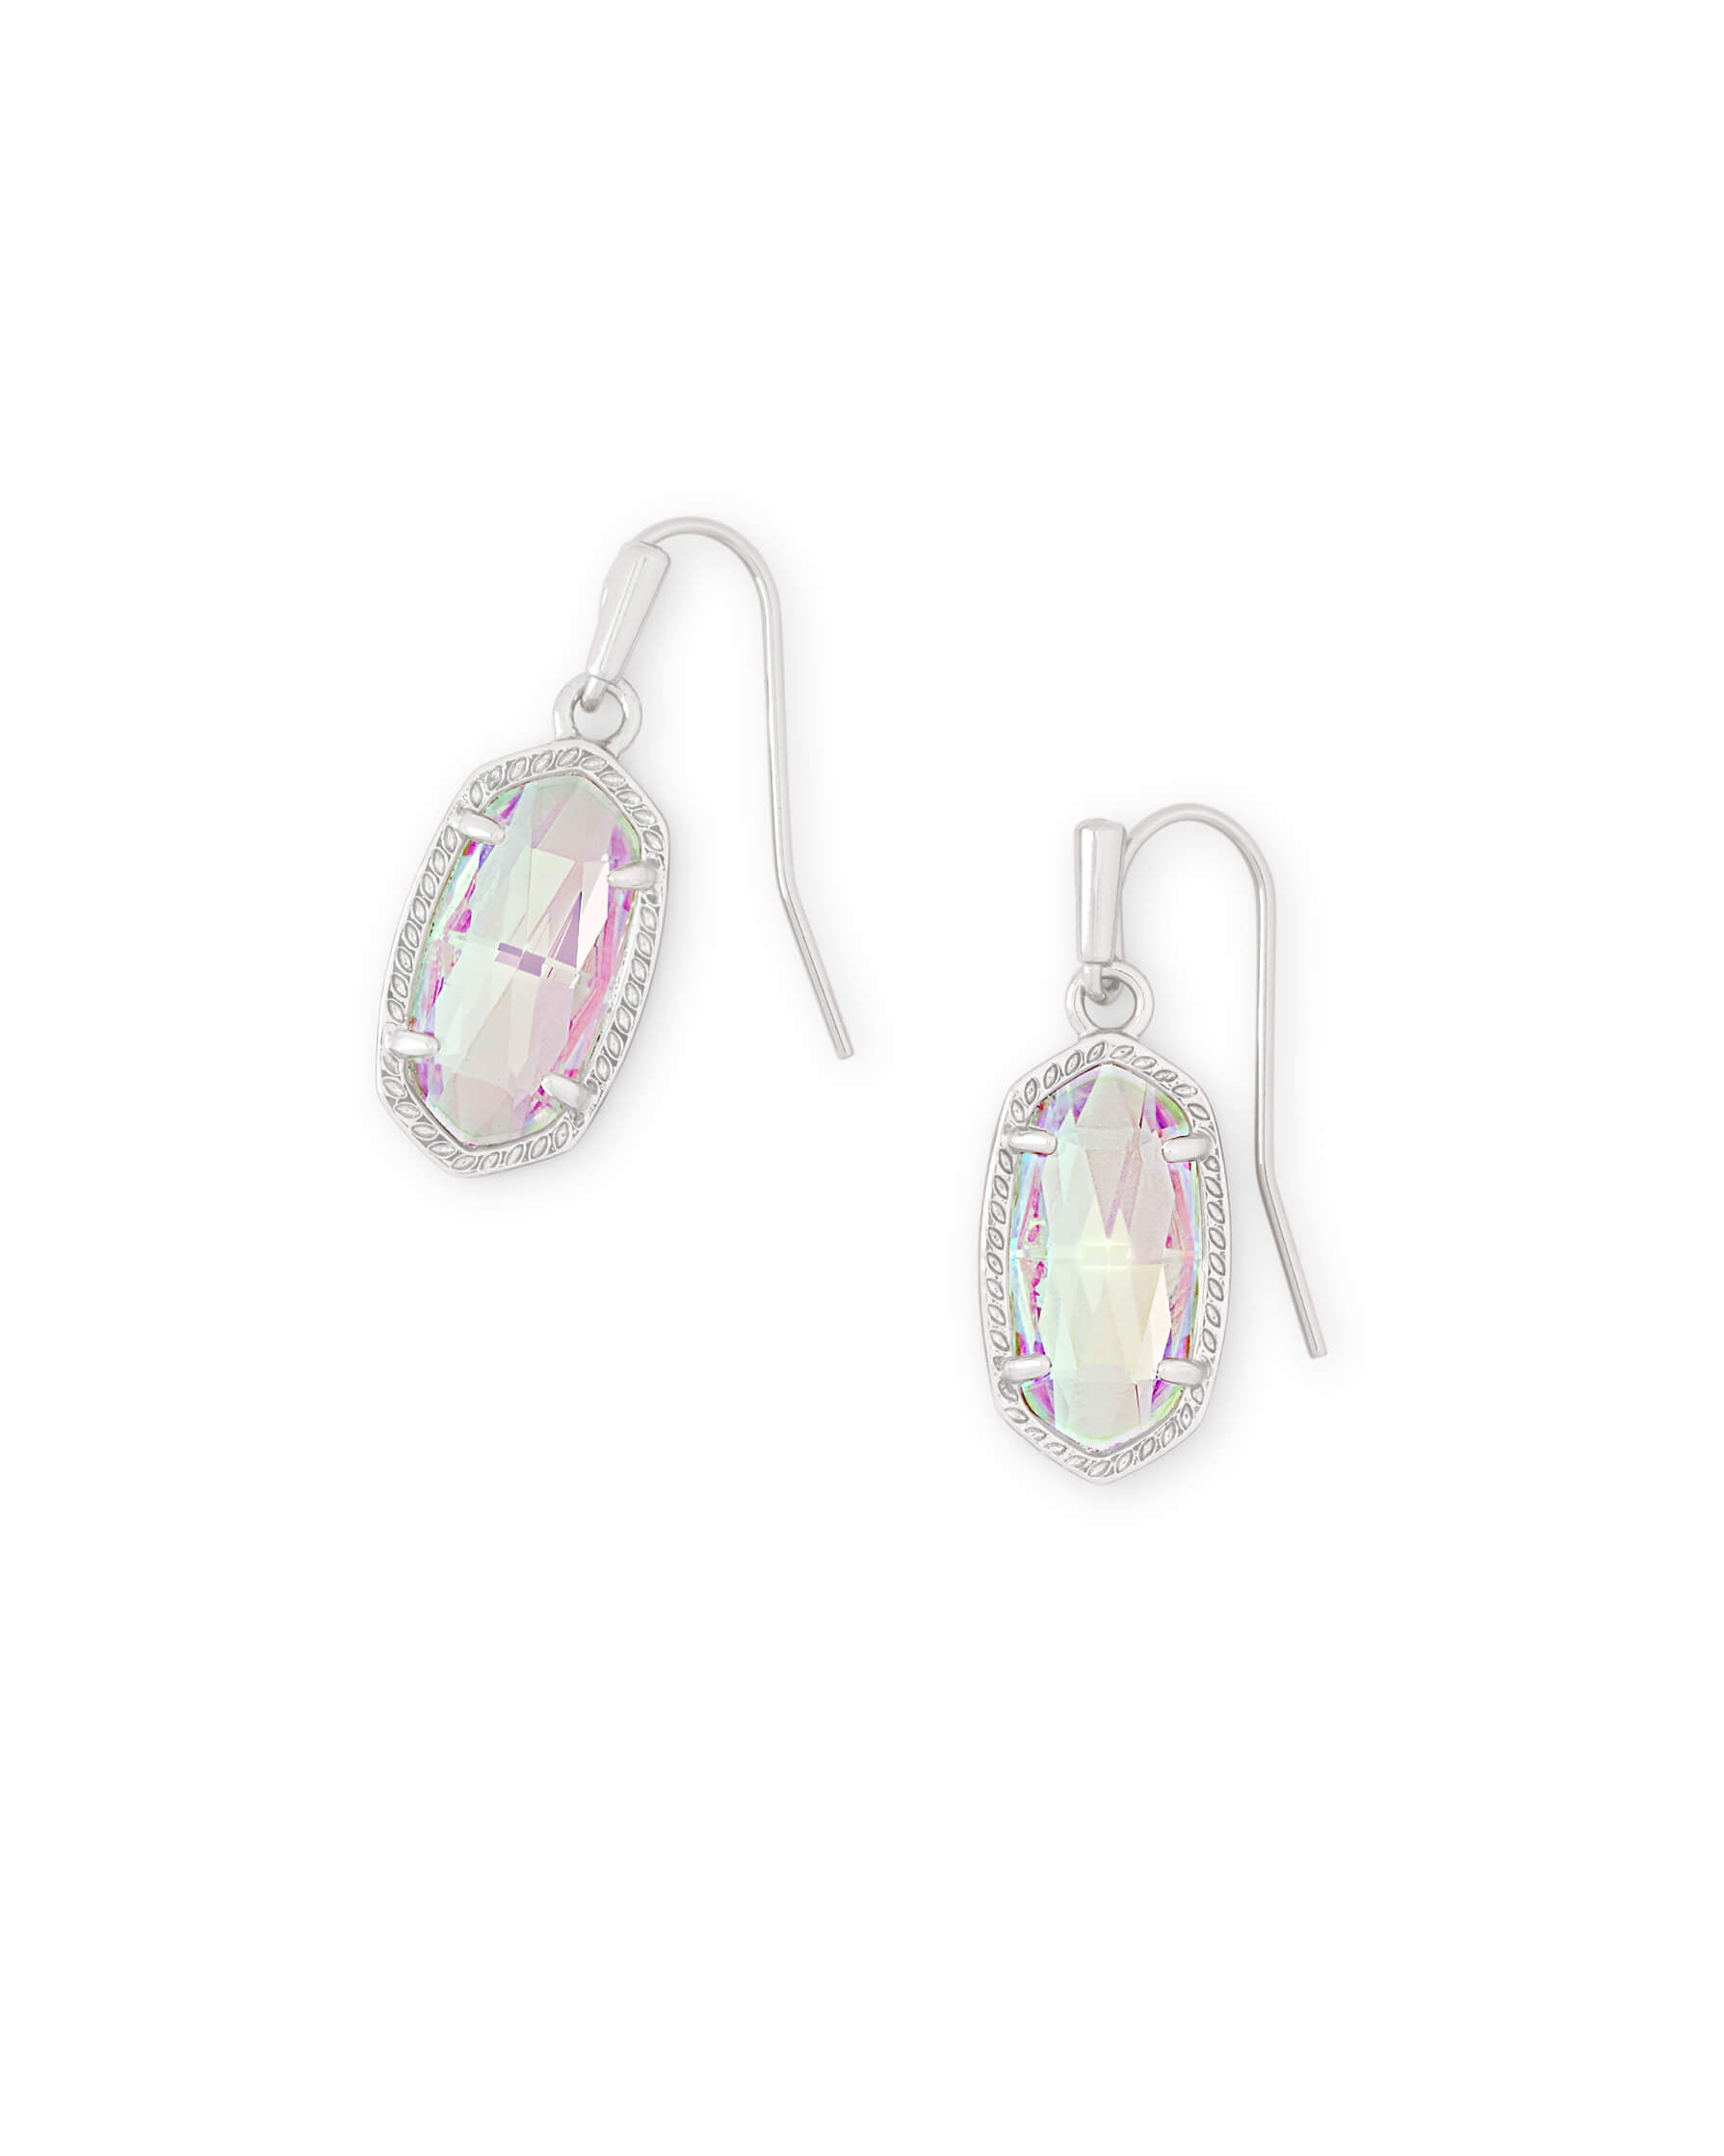 Lee Drop Earrings in Silver